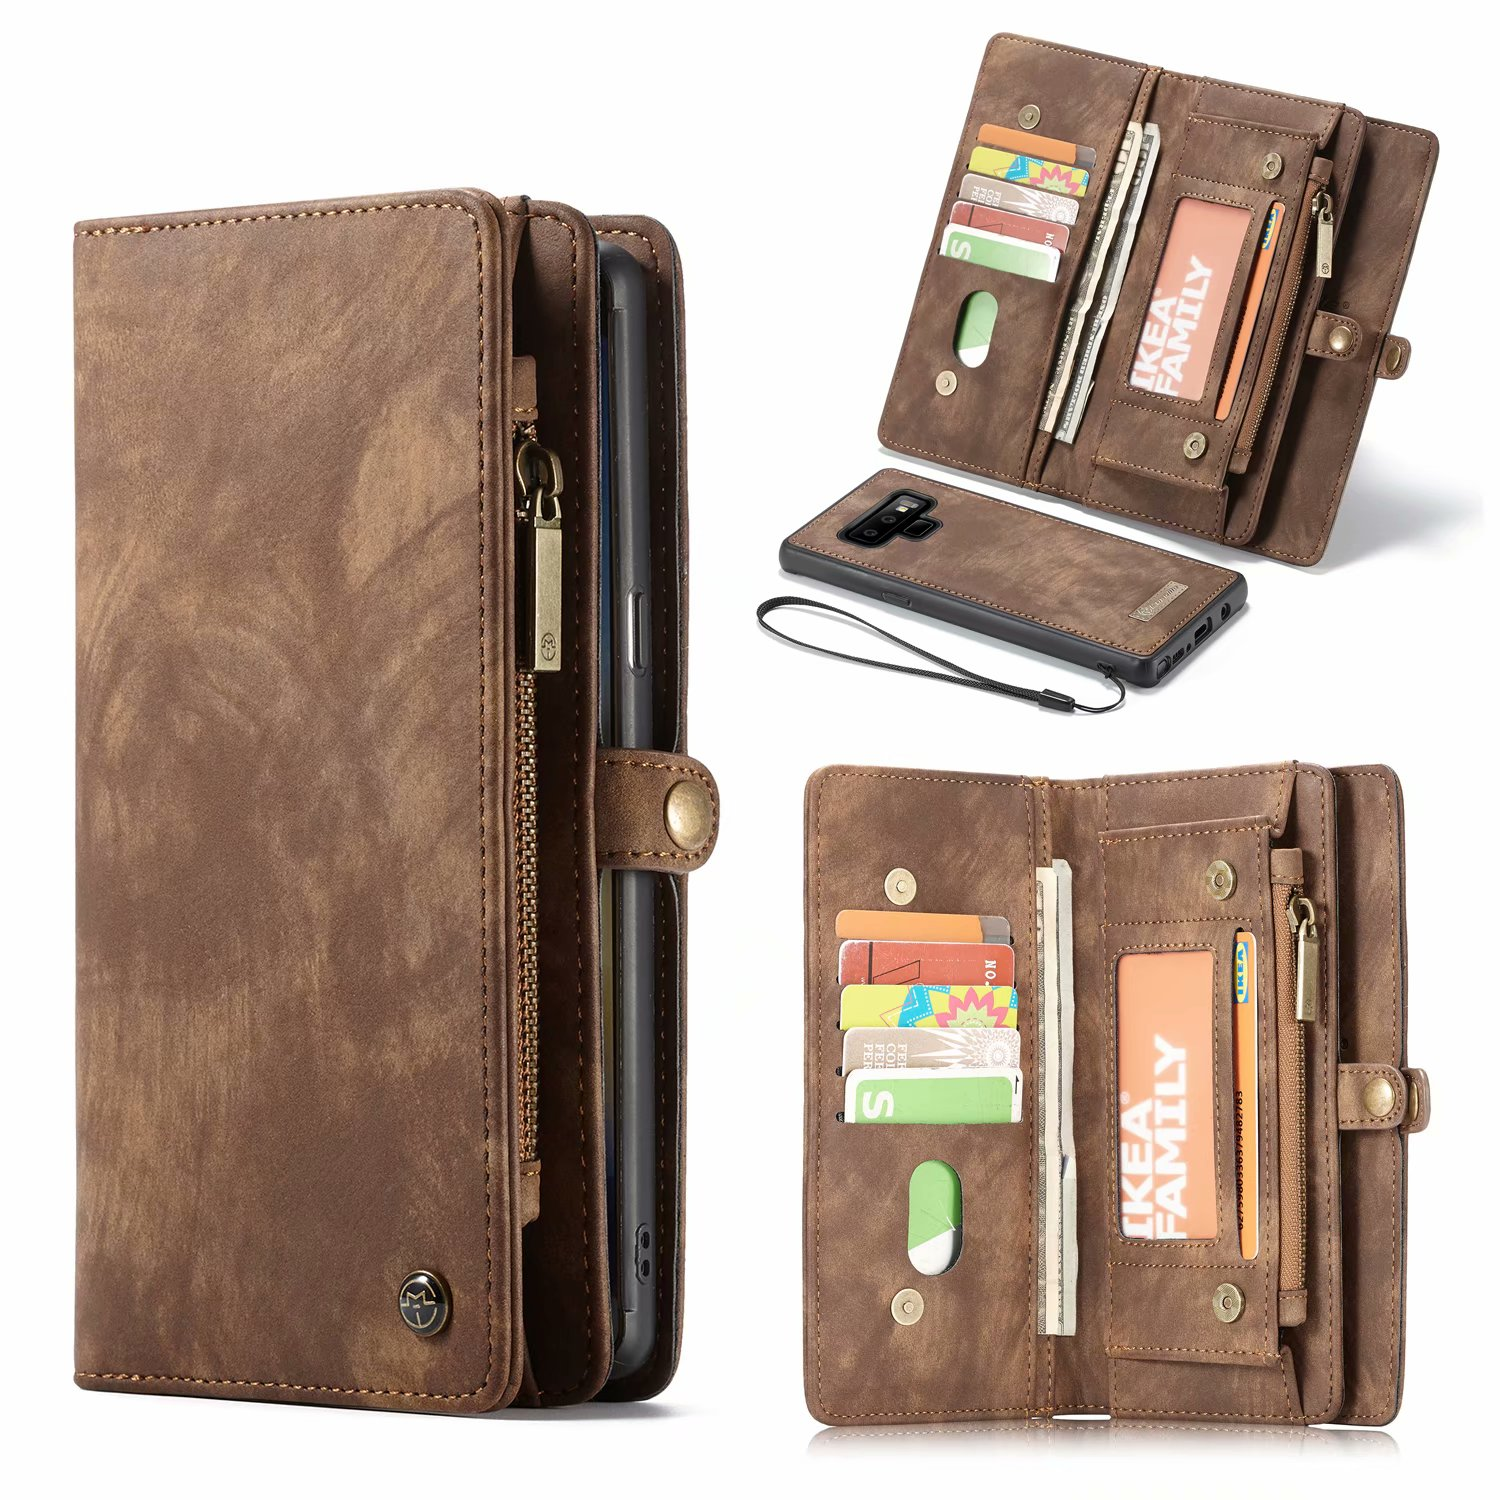 Detachable Wallet Case For Samsung GaLaxy Note 9 Flip Cover PU leather Zipper Phone Bag Case For Samsung Note9 Phone Bag Cases